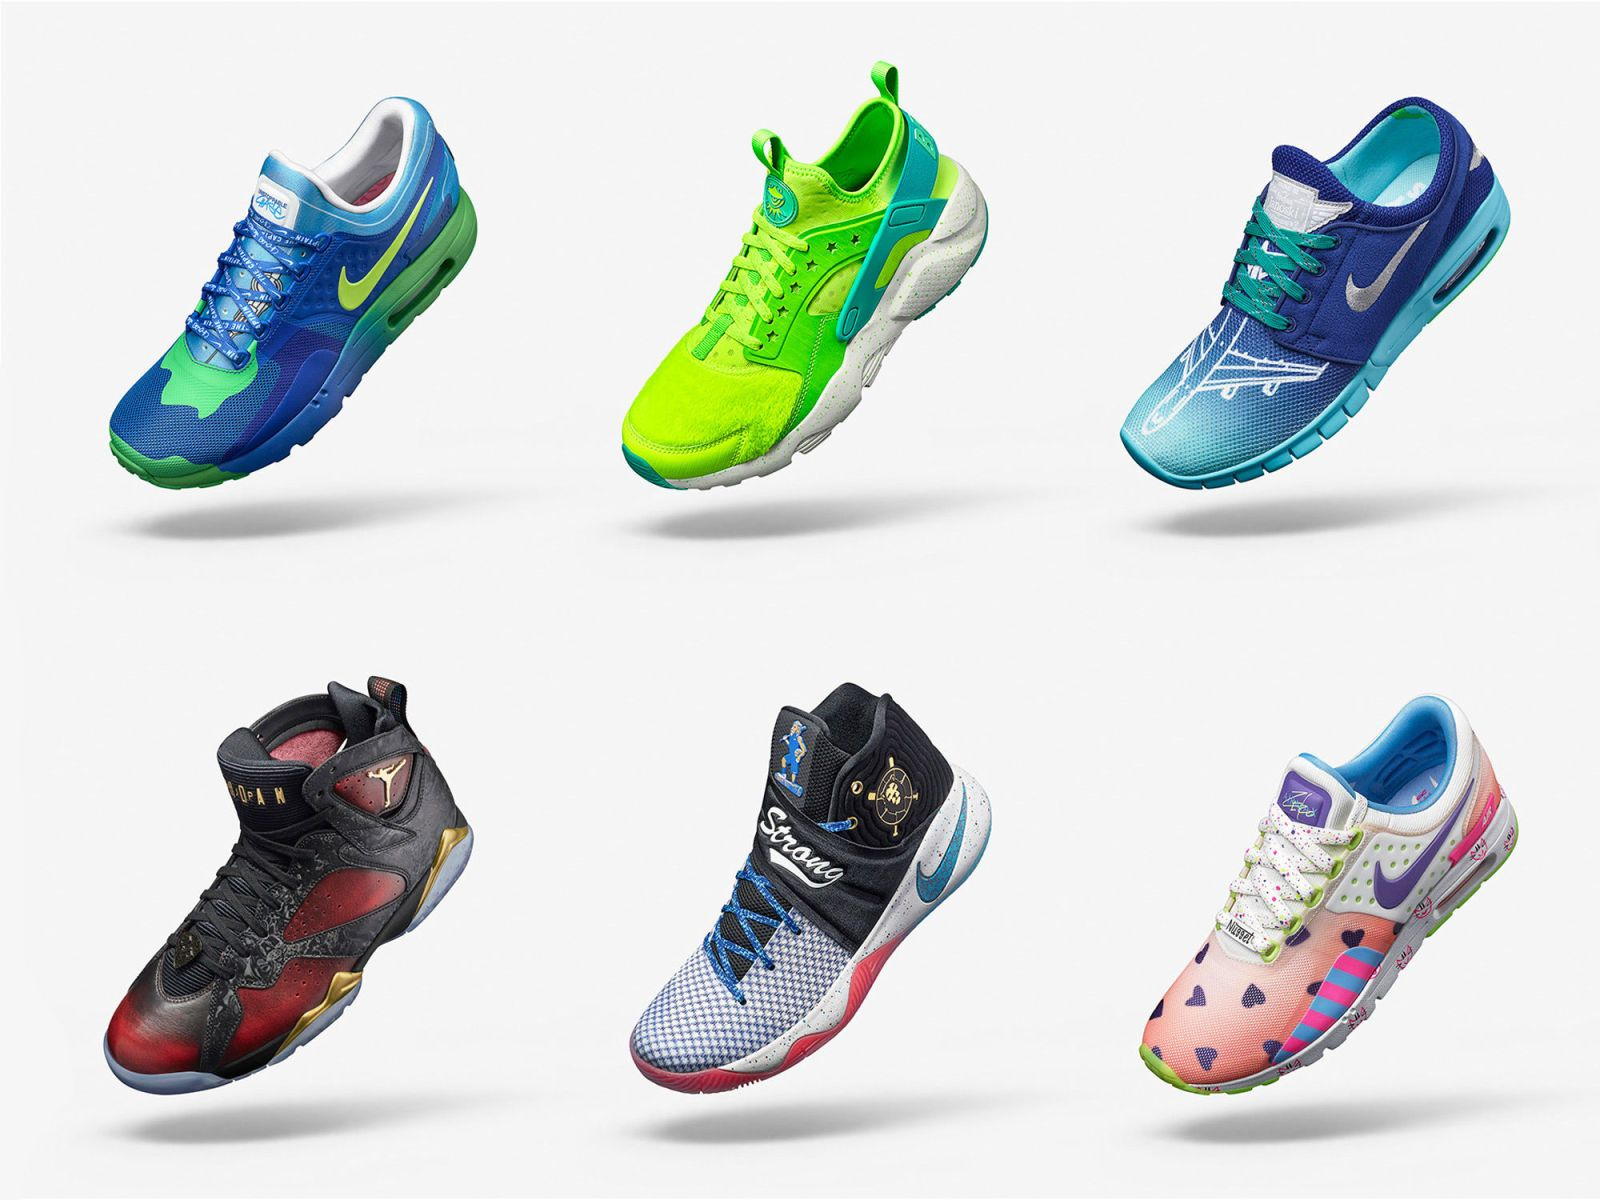 The full lineup of Doernbecher Freestyle Collection sneakers.